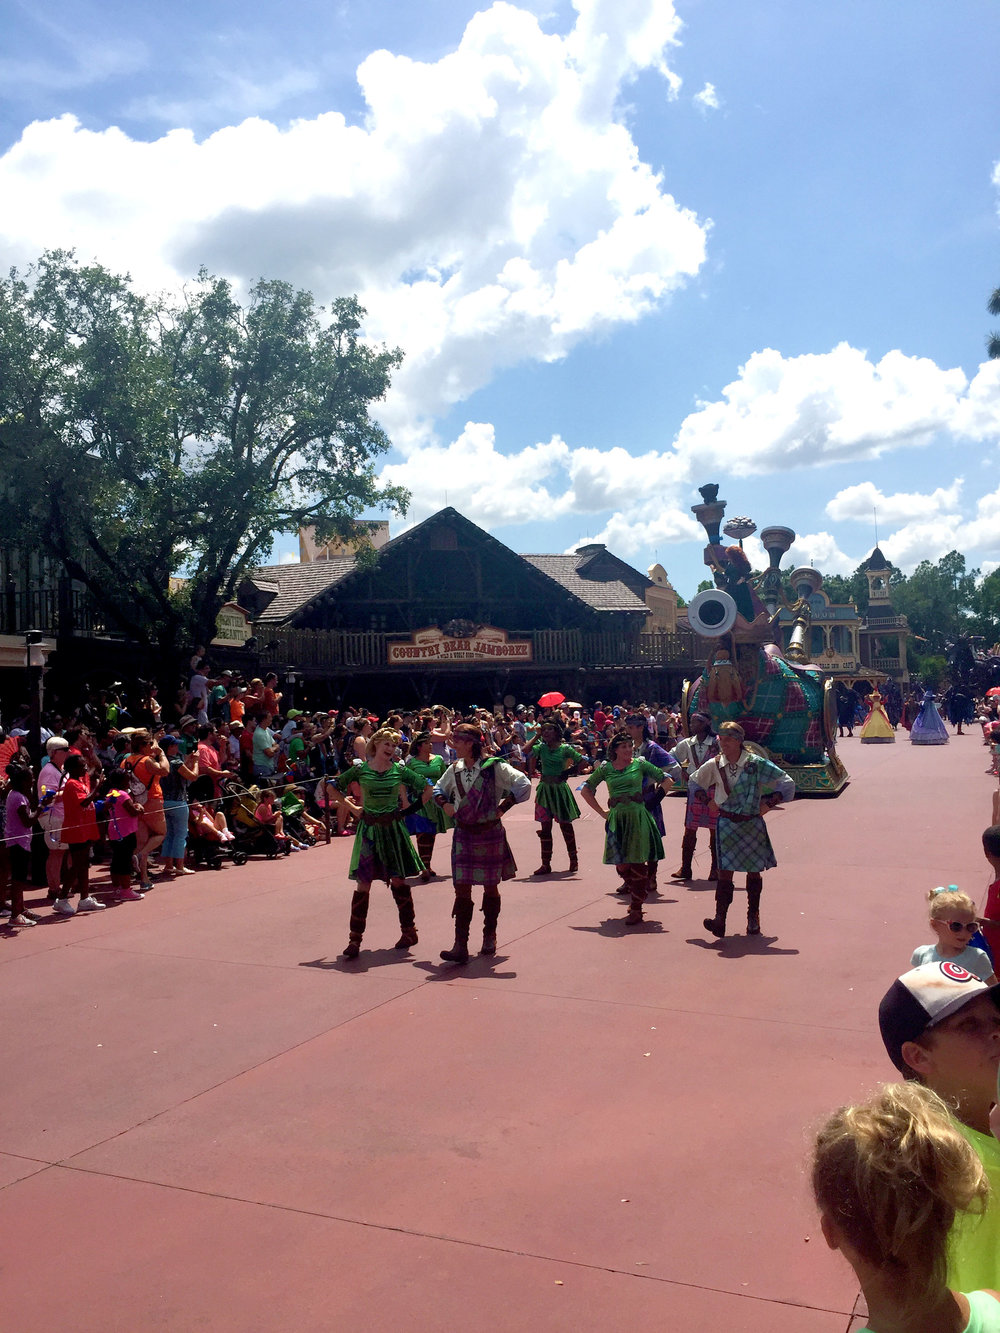 I thought that it was kind of odd that an entire section of the parade was devoted to Brave, but hey, not complaining!